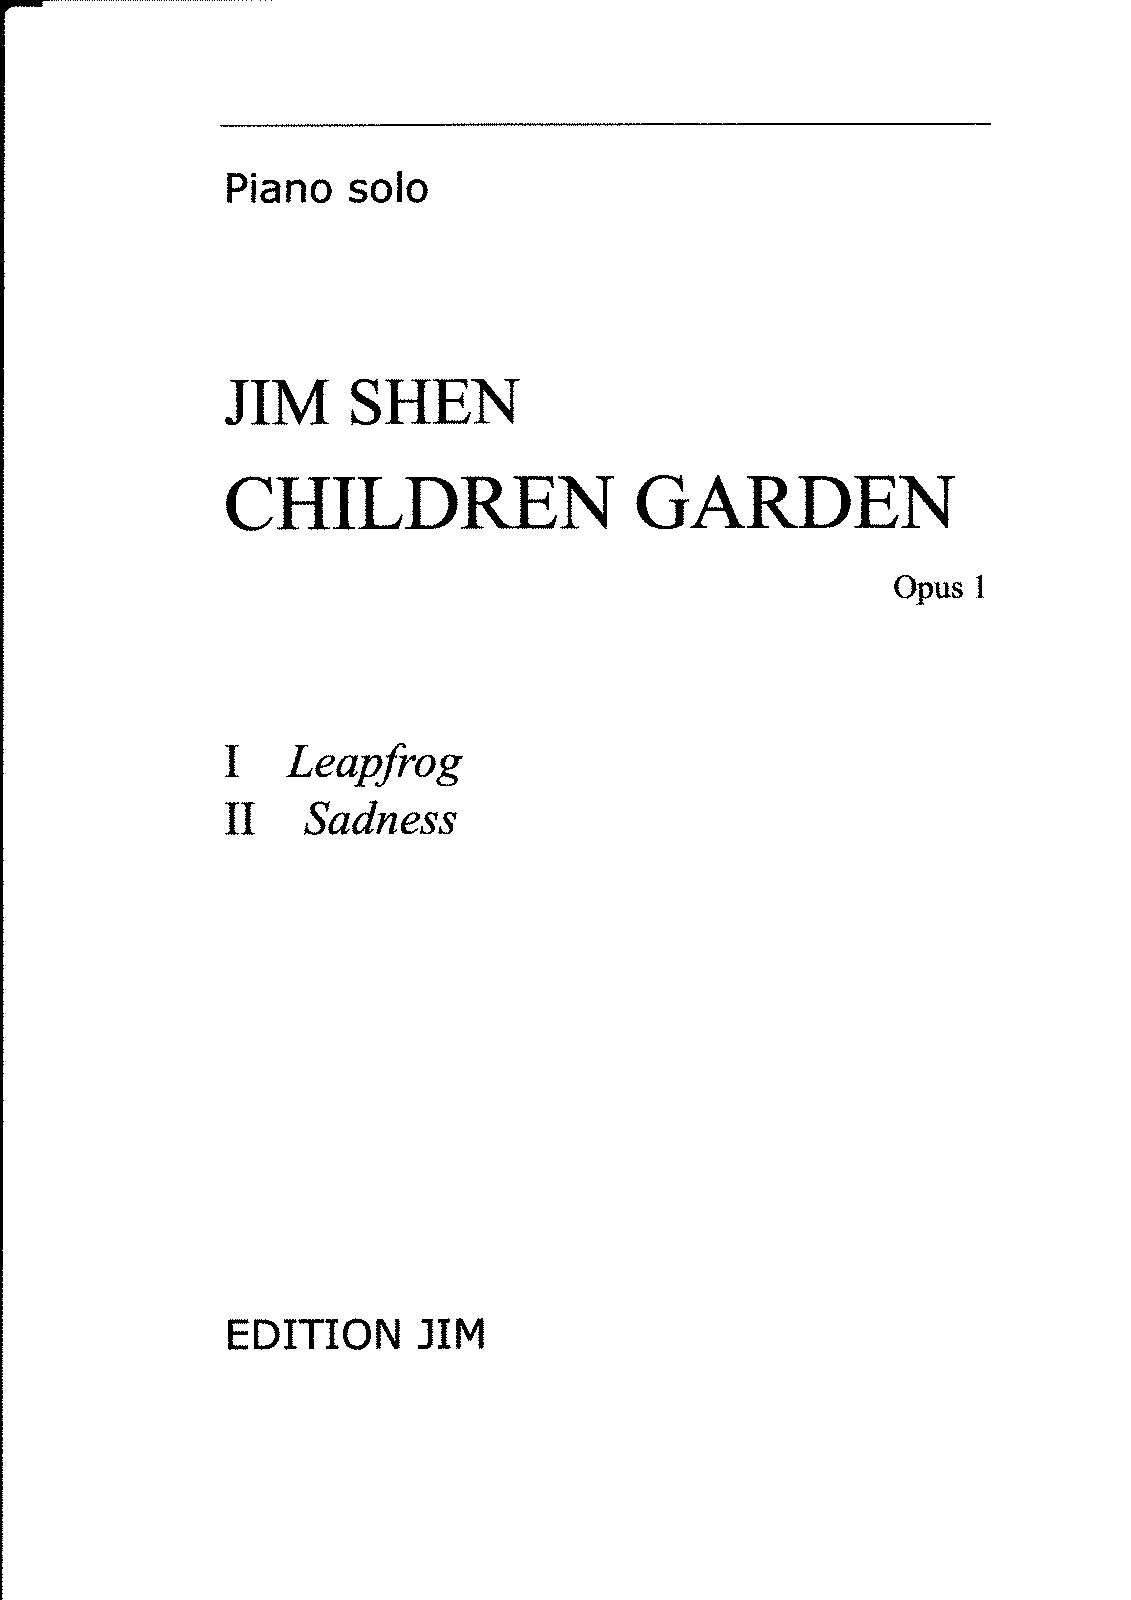 PMLP126222-JIM-SHEN-OP1-other.pdf